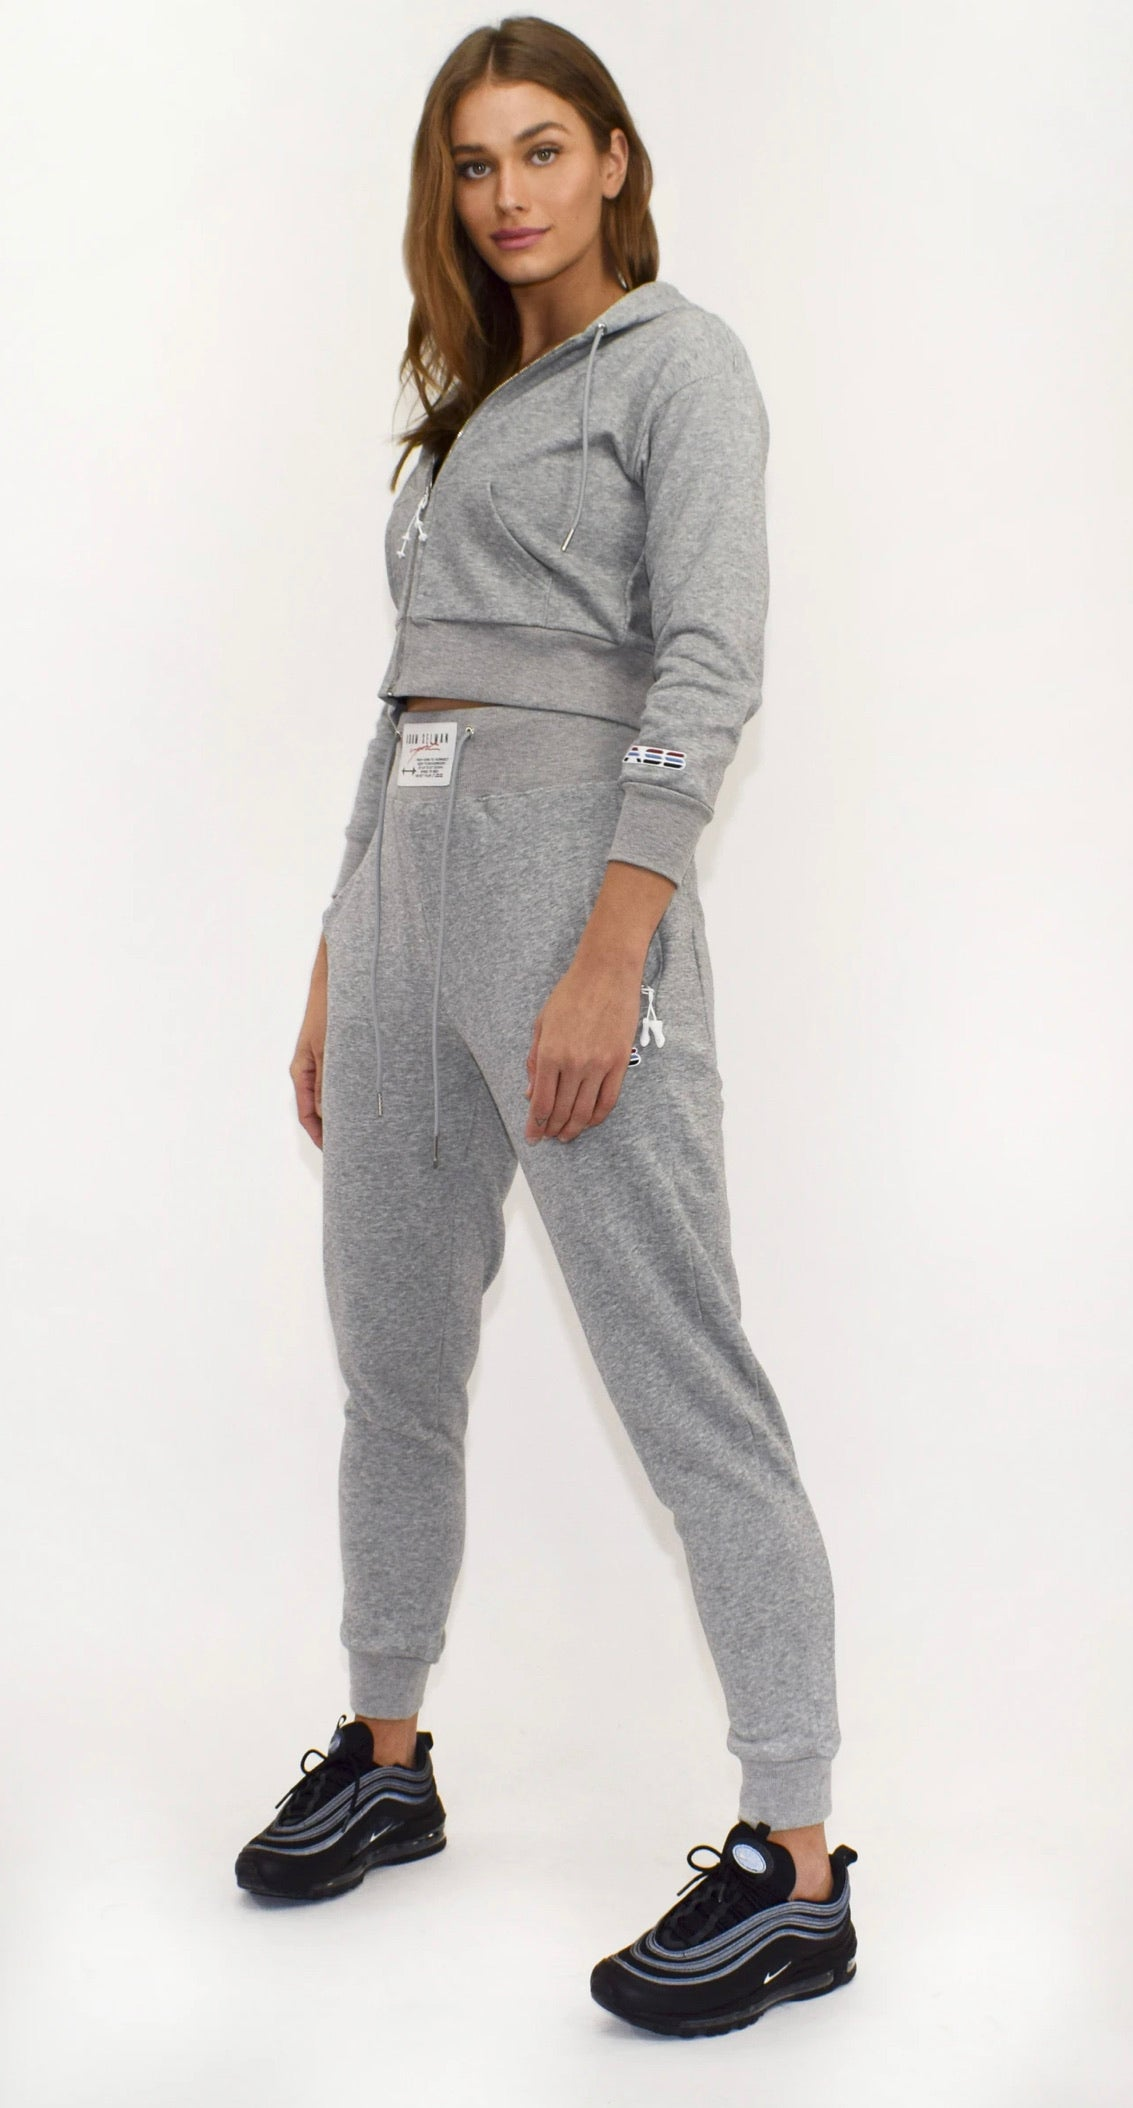 Heather Hi-Rise Sweatpant